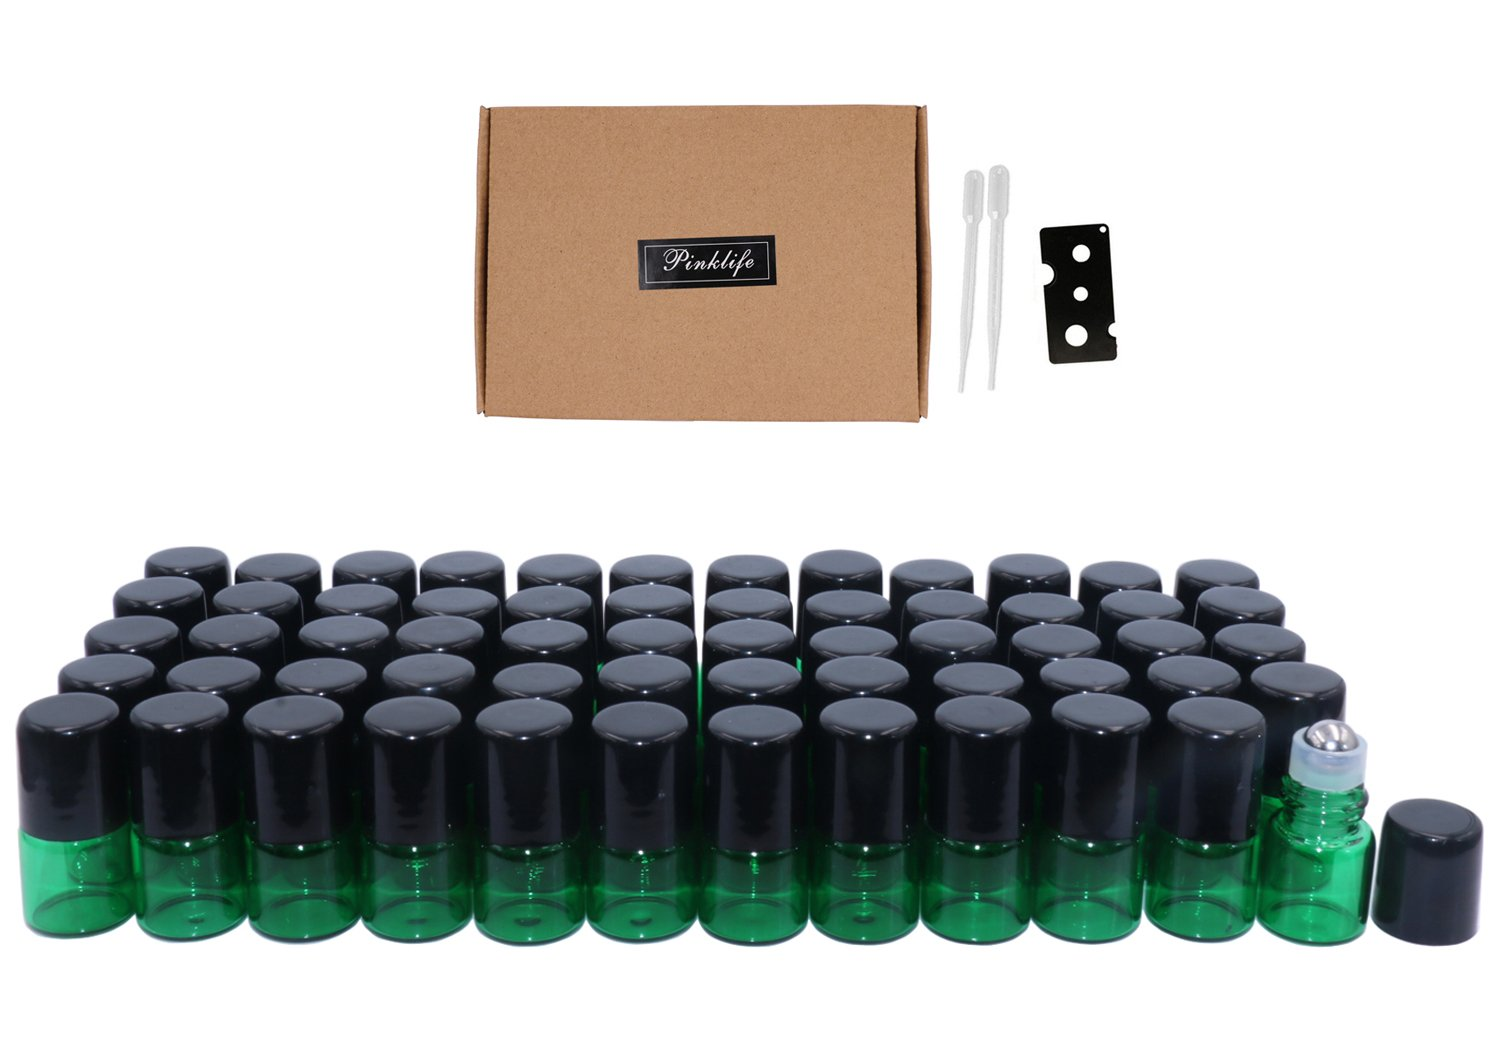 Pinklife 1ml(1/4 Dram) Glass Roller Bottles,60 Pcs Mini Essential Oil Roll on Glass Bottle Empty Aromatherapy Perfume Sample Vials with Metal Roller Ball,Opener and 3ml Dropper Included(Green) by Pinklife